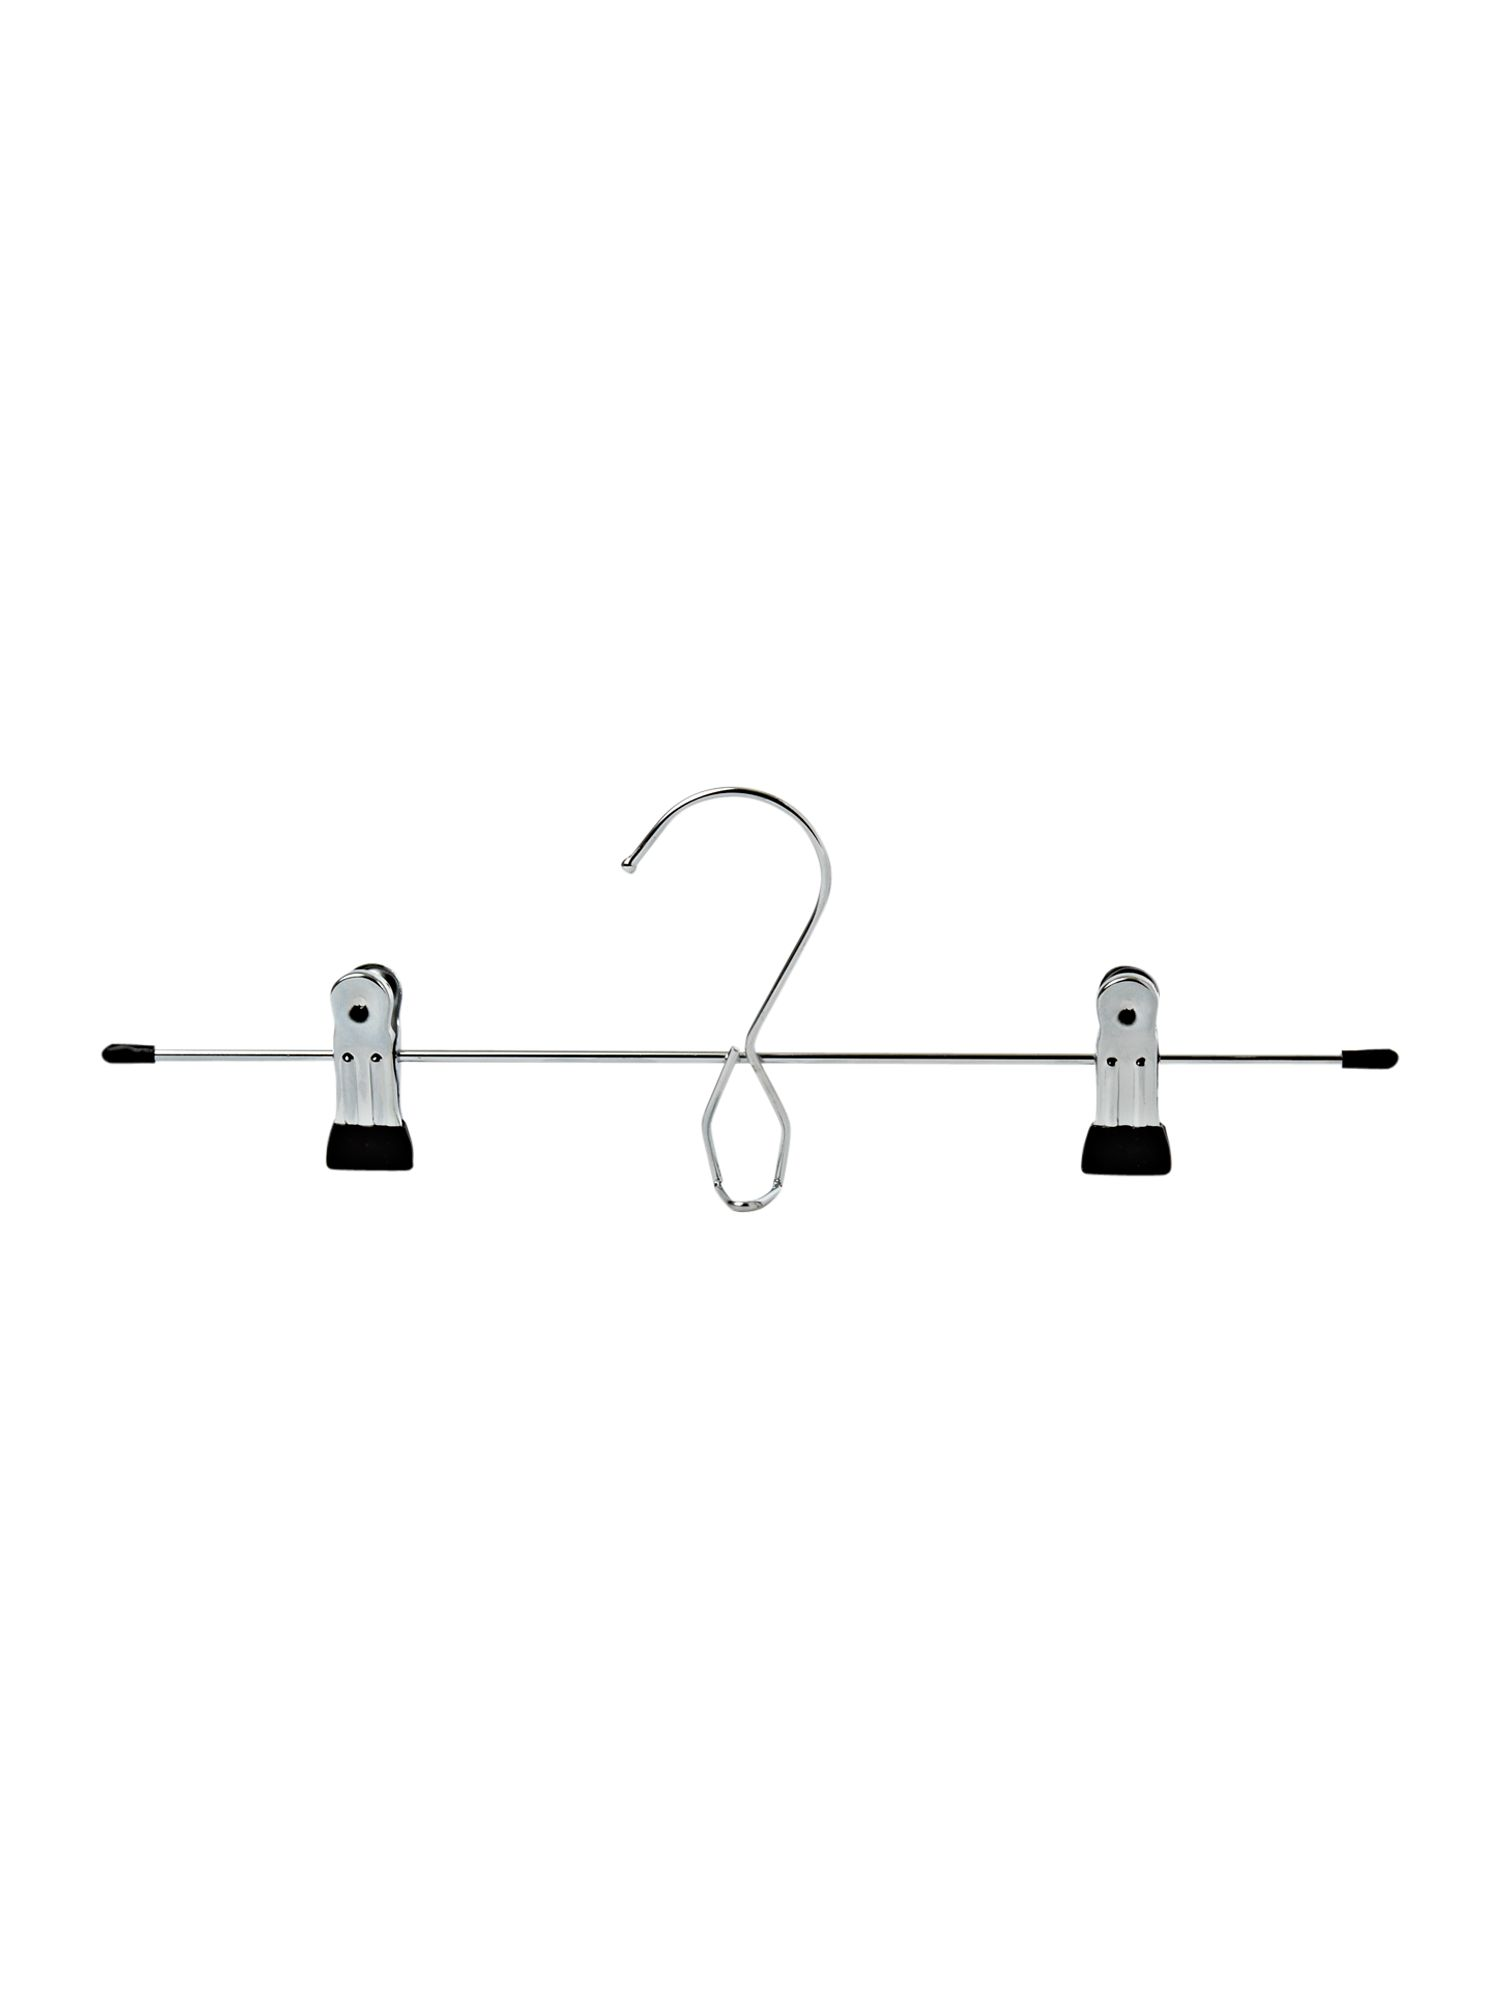 Trouser and skirt clip hangers